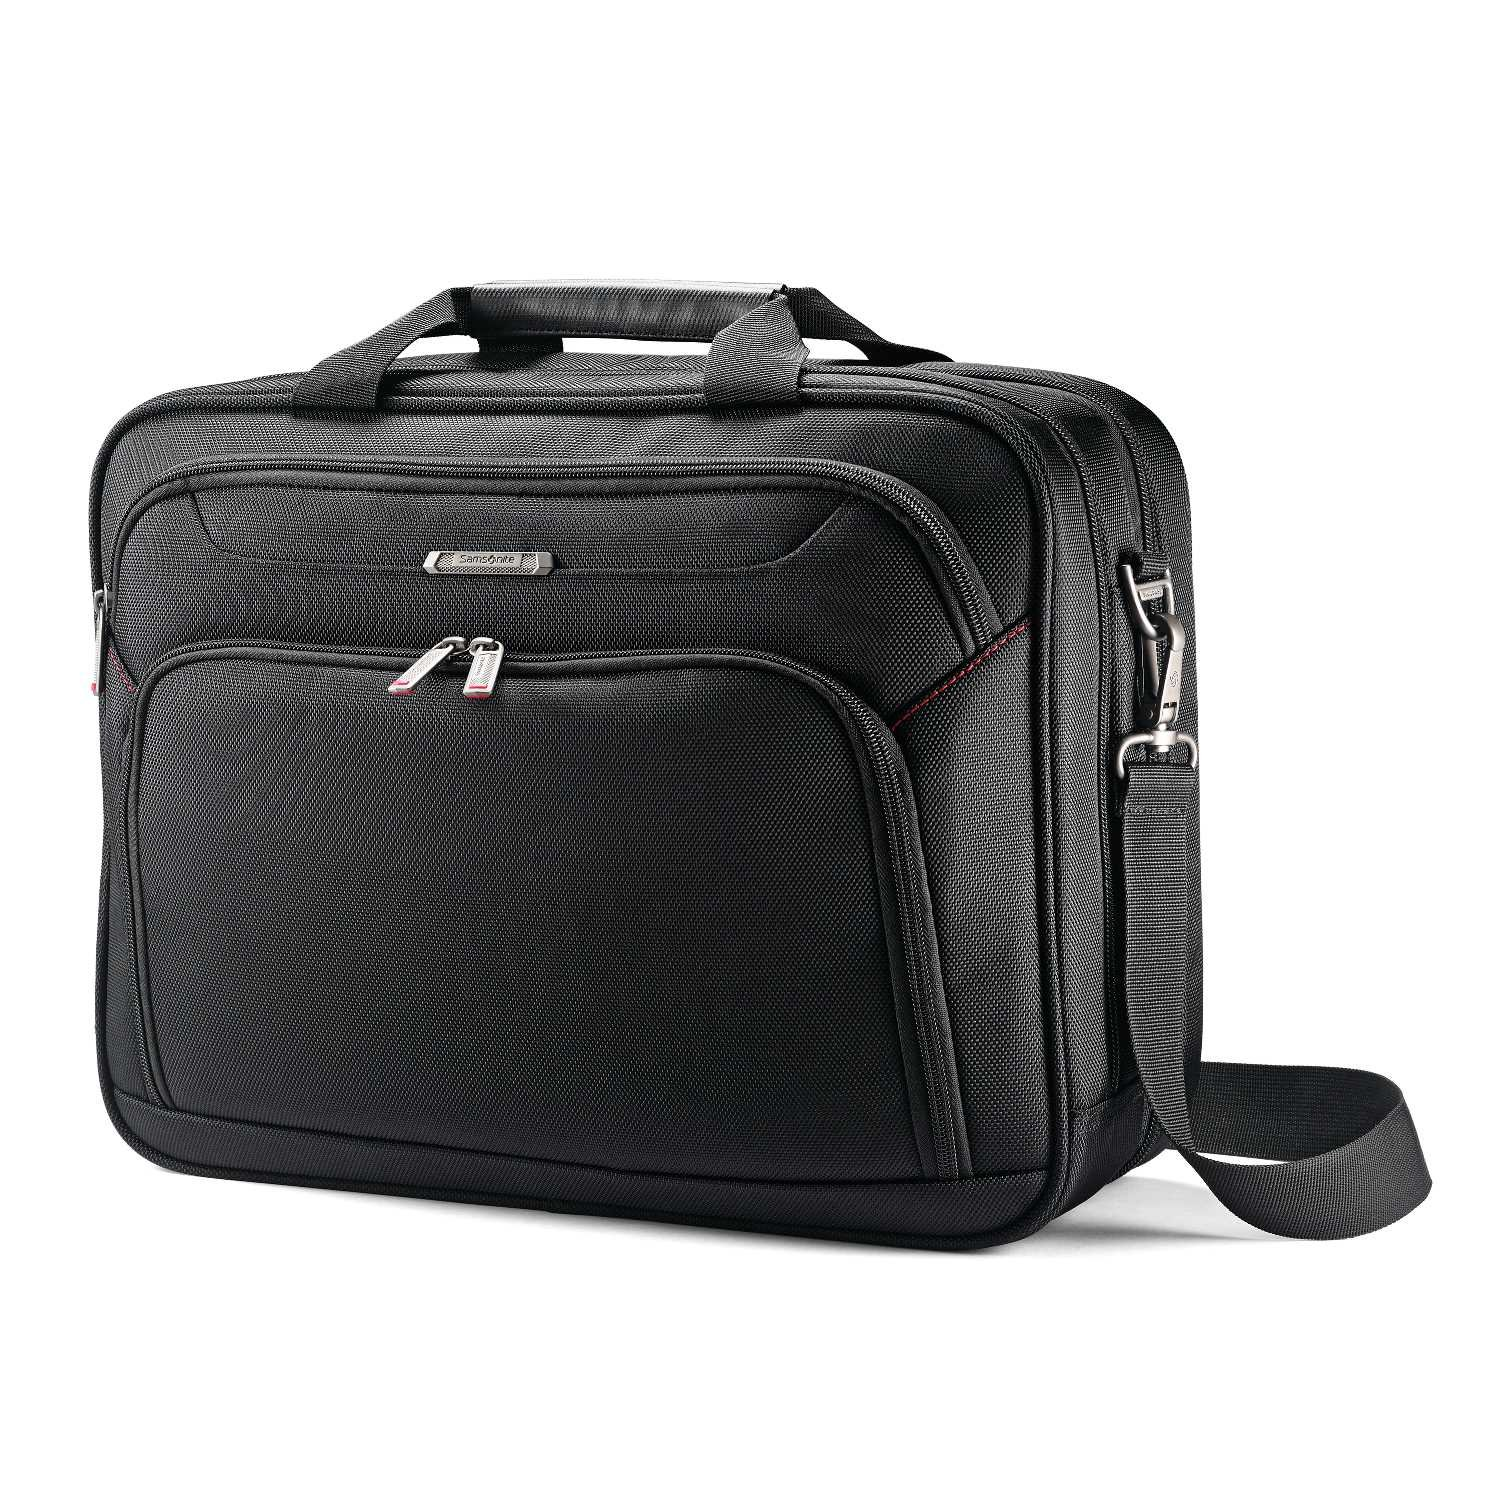 Samsonite Xenon 3.0 Two Gusset Brief-Checkpoint Friendly Laptop Bag, Black, One Size by Samsonite